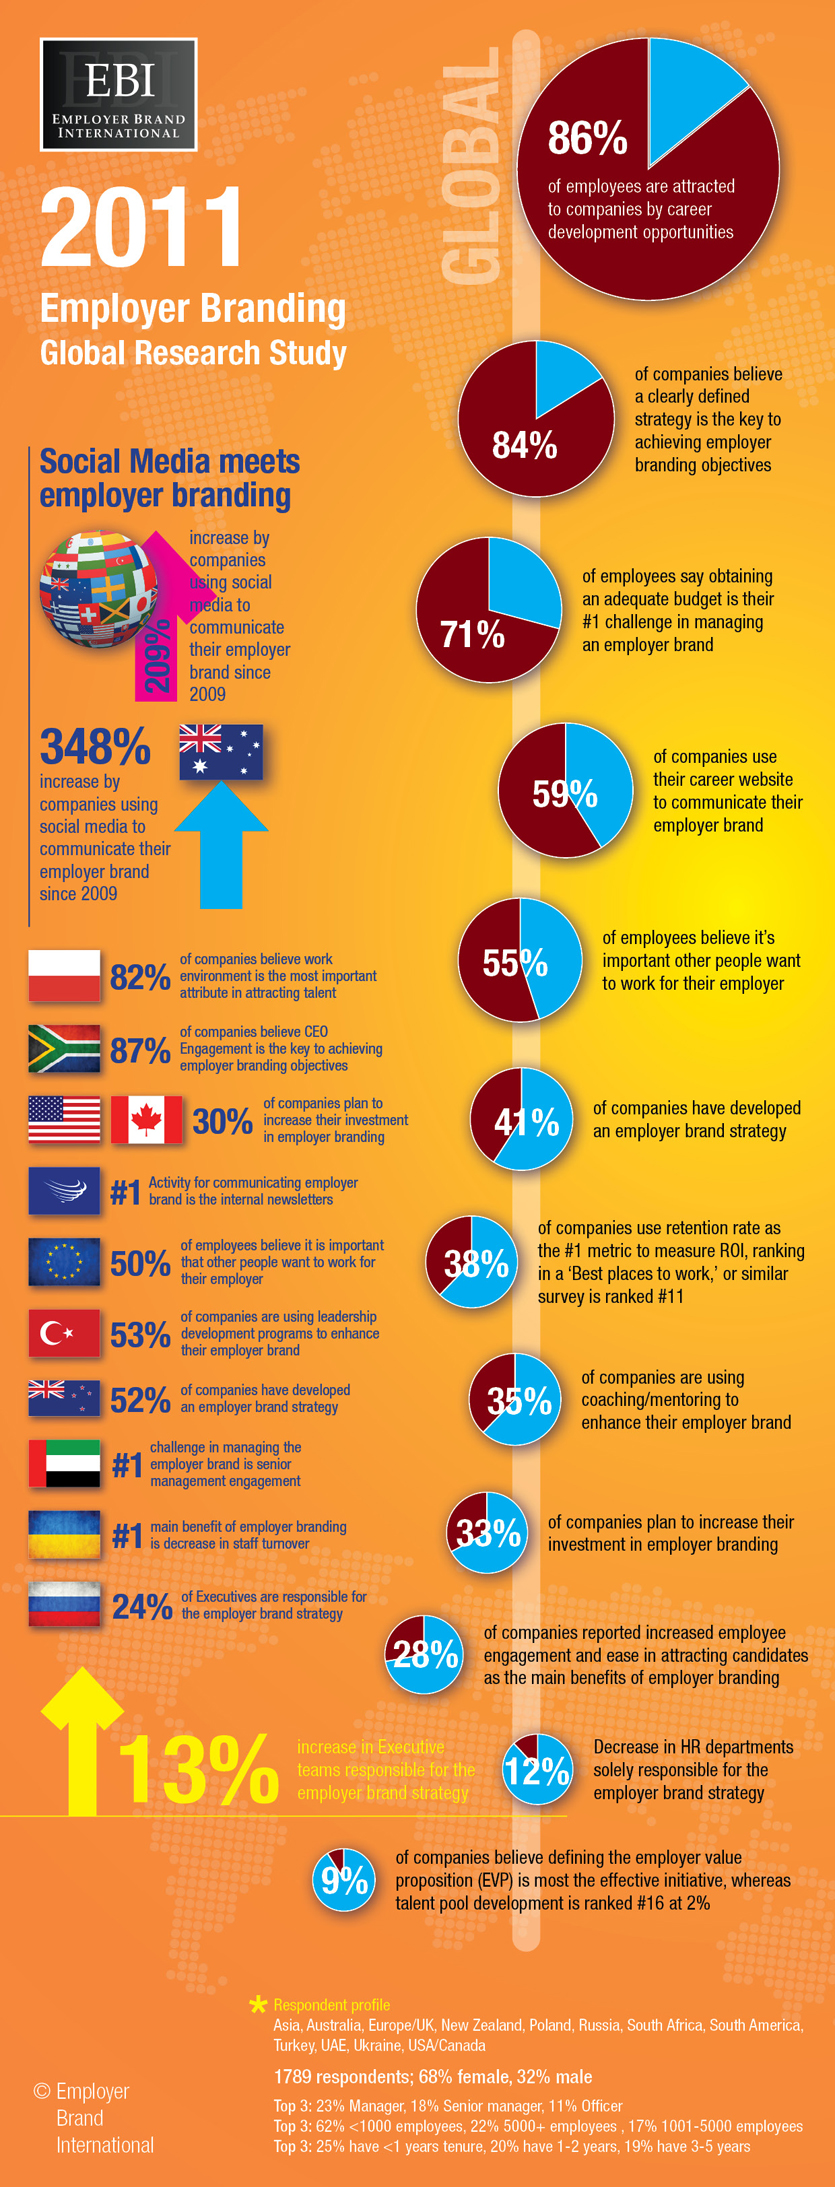 Executives now challenging HR and Marketing for responsibility of the Employer Brand strategy In an era of social media dominance where employer branding continues to develop around the world, HR and Marketing are now being challenged by Executives for control of the Employer Brand strategy in new survey findings from […]